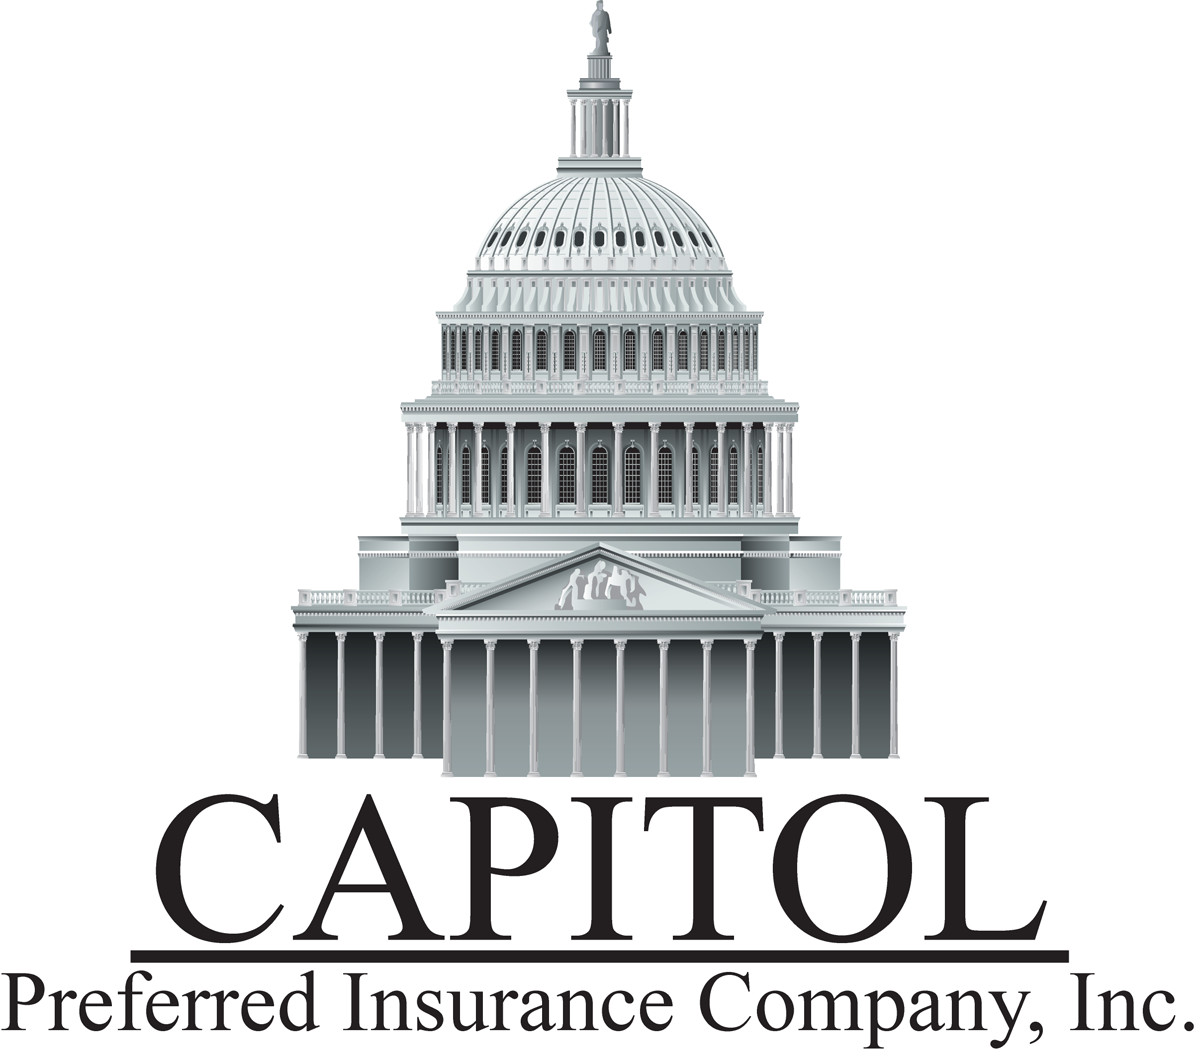 capitol preferred insurance company logo